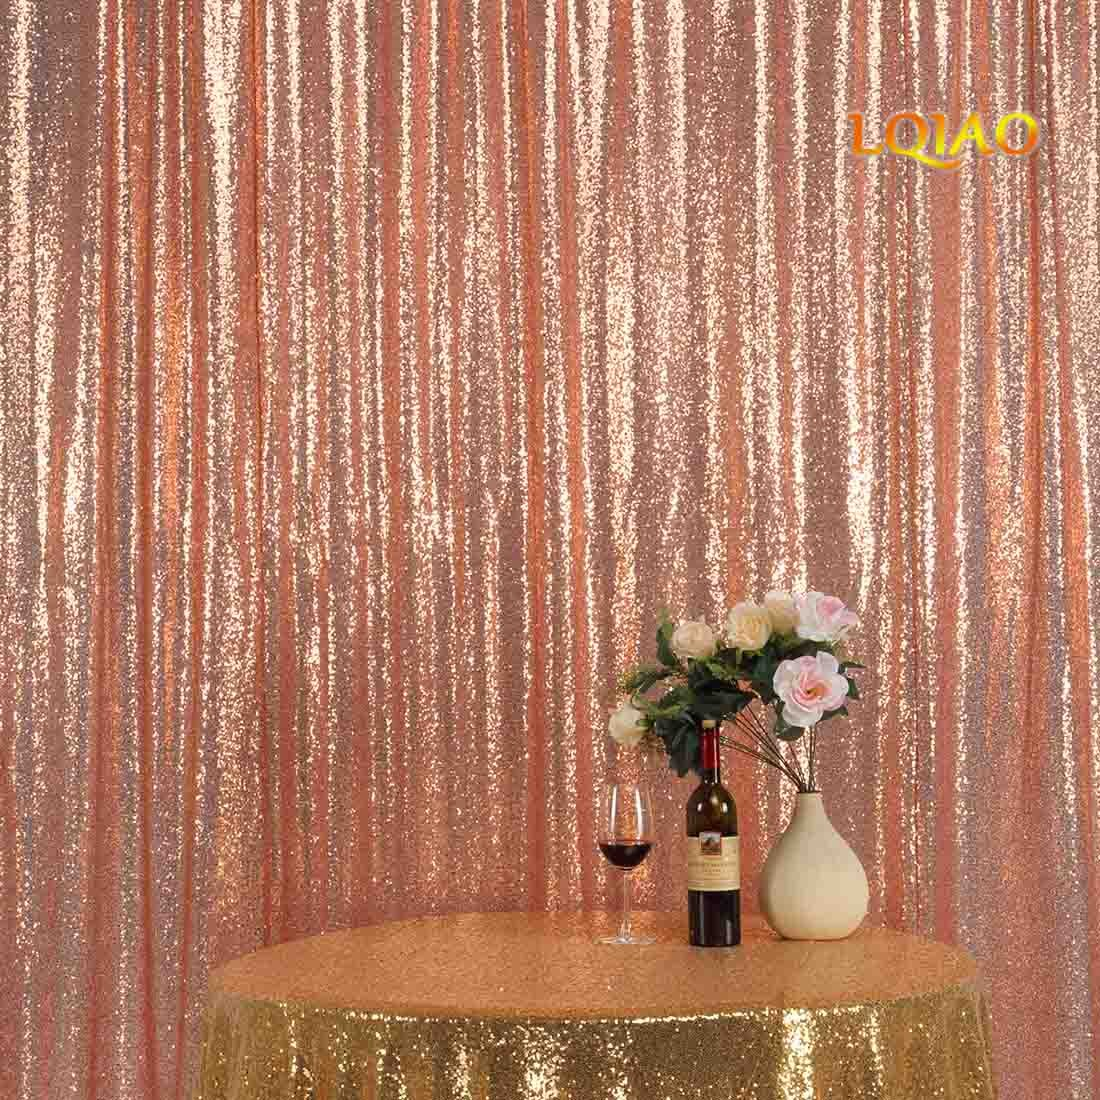 LQIAO Sequin Curtain 9X9FT-Rose Gold Sequin Backdrop Wedding Photo Booth Door Window Curtain for Halloween Party Wedding Decoration